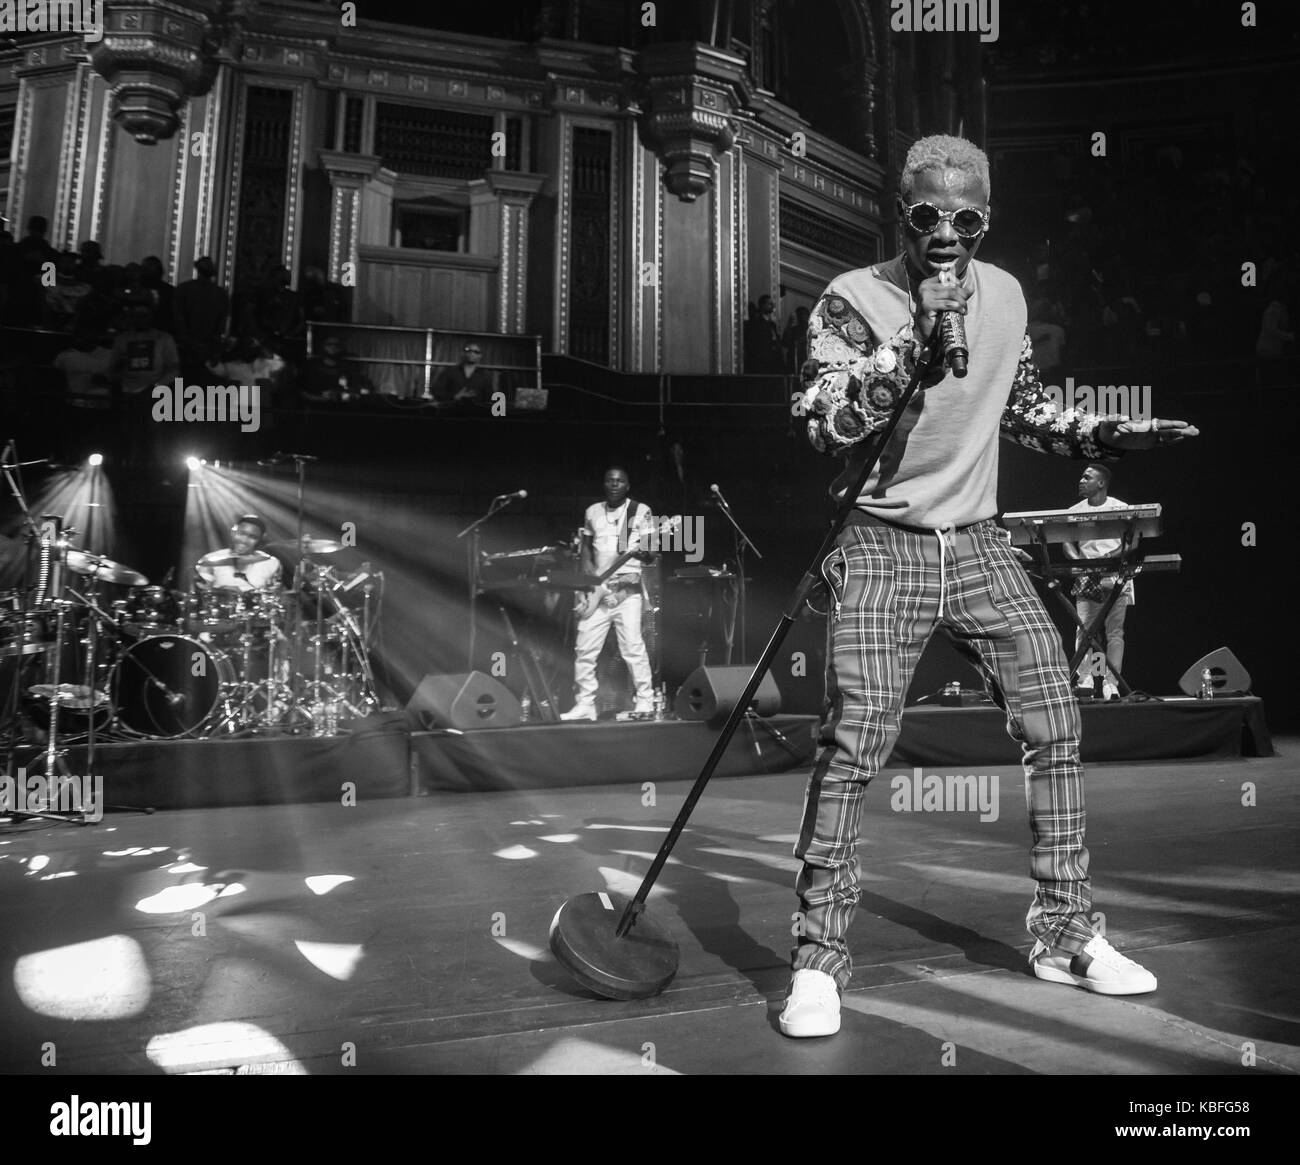 London, United Kingdom. September 29, 2017. Wizkid performs live on stage at Royal Albert Hall. Michael Tubi / Alamy - Stock Image